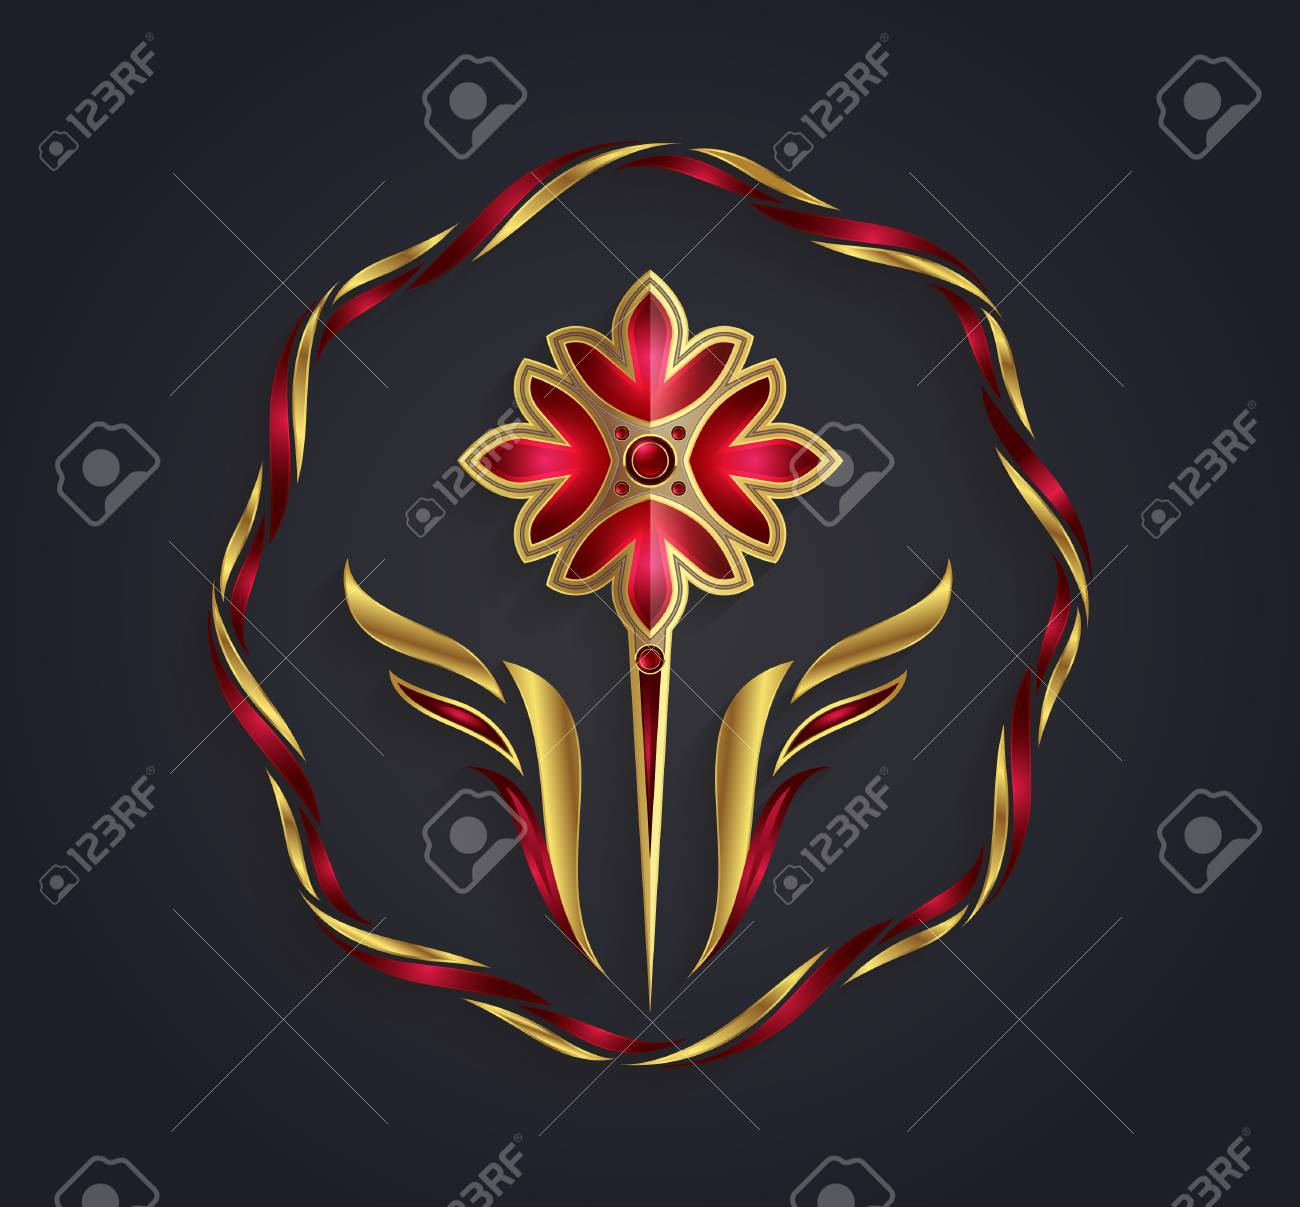 Vector Graphic Abstract Golden And Silver Flower Symbol With